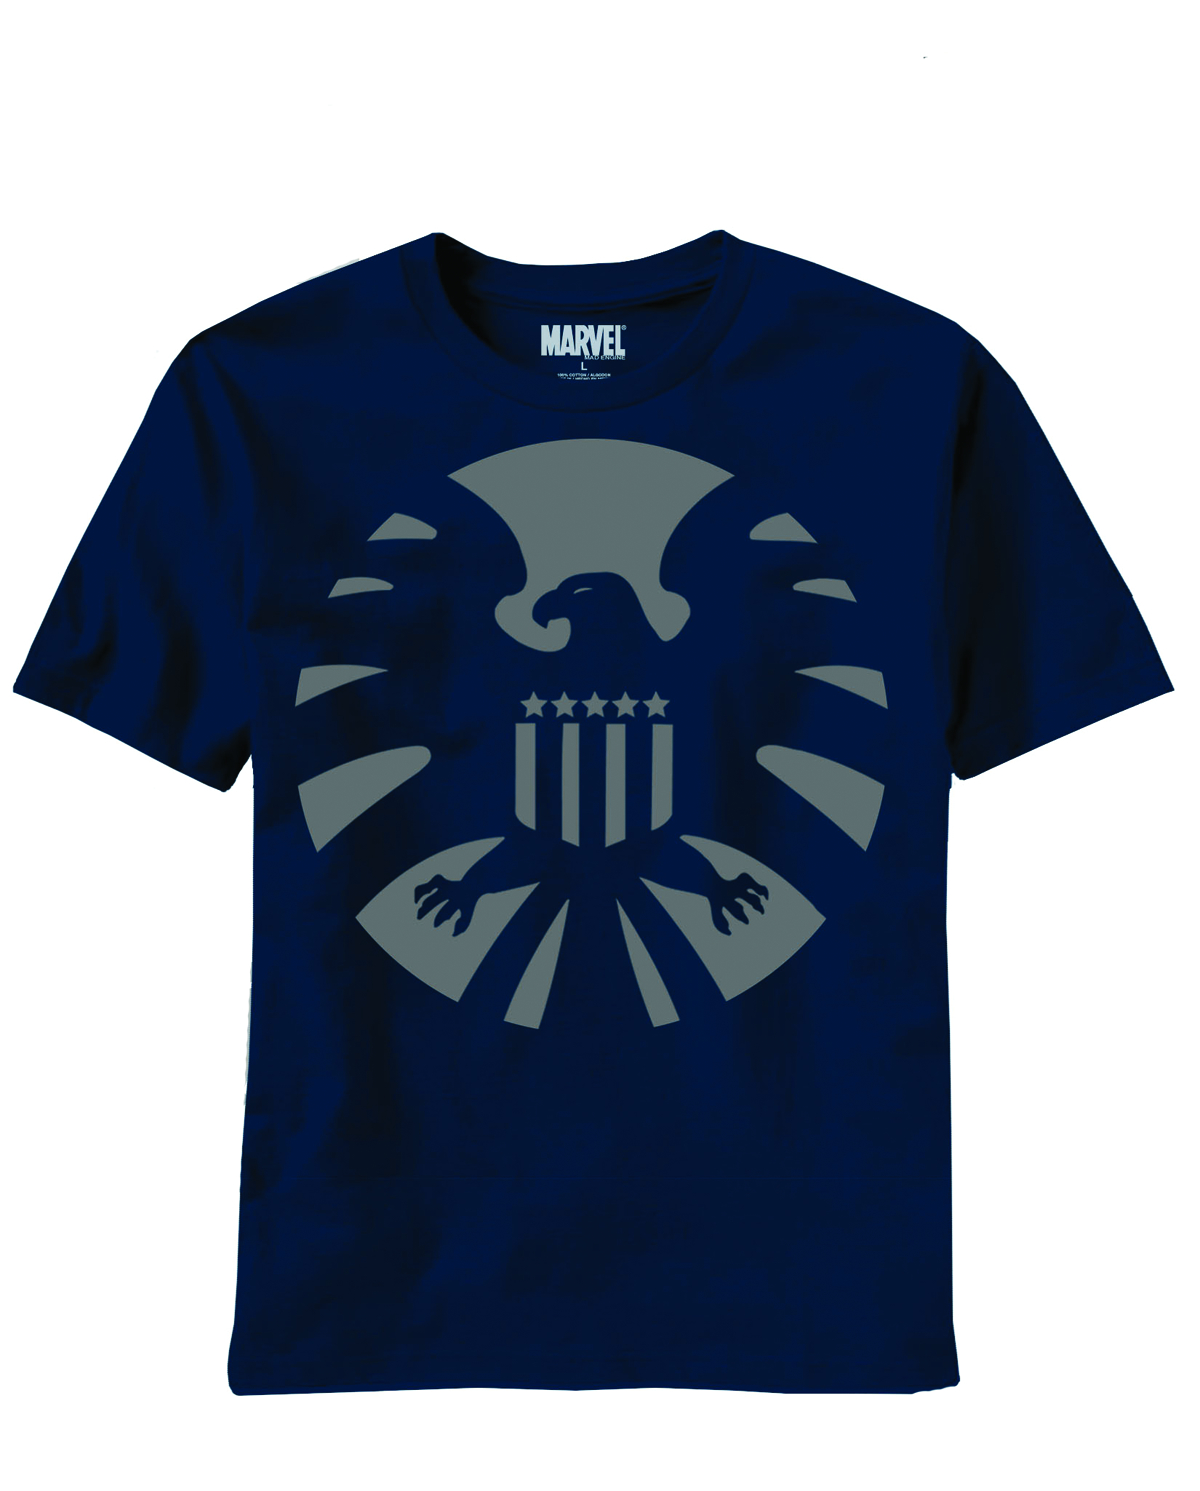 SHIELD NIGHT SHIELD NAVY T/S LG